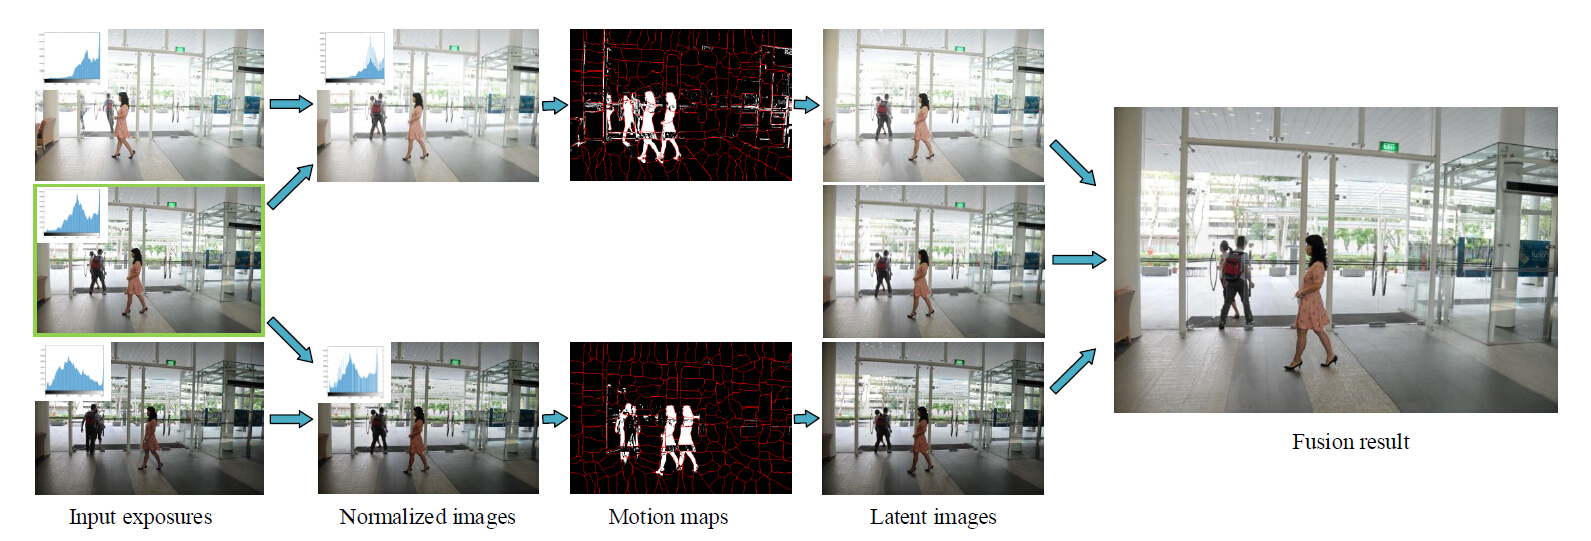 Motion-free Exposure Fusion based on Inter-consistency and Intra-consistency